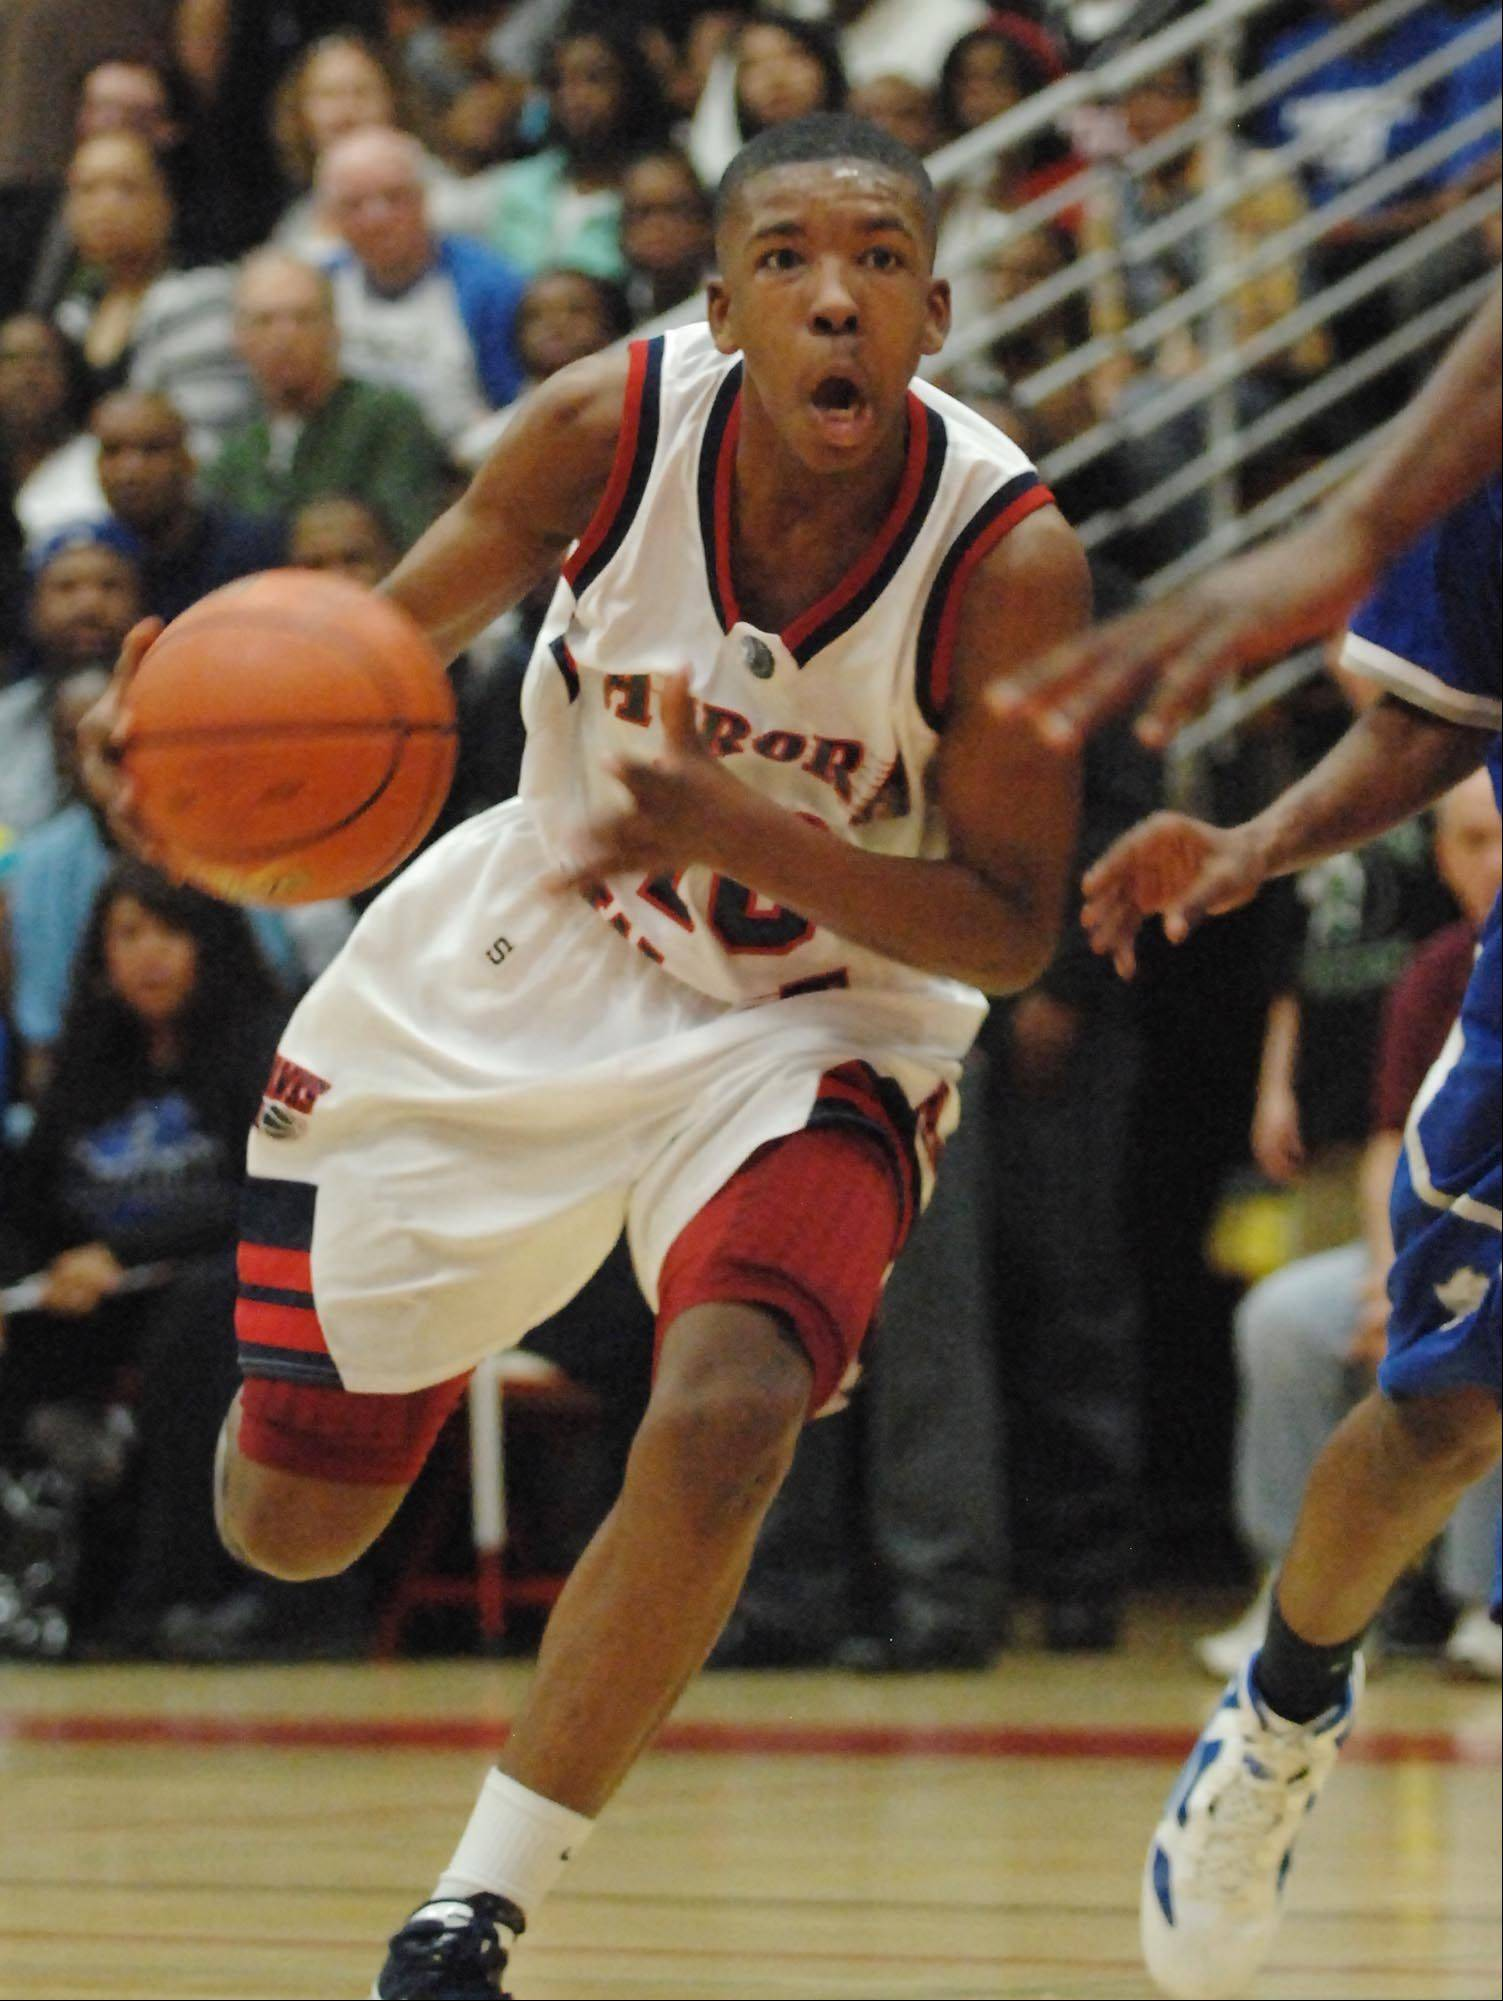 Images from the West Aurora vs. Proviso East boys supersectional basketball game Tuesday, March 13, 2012.